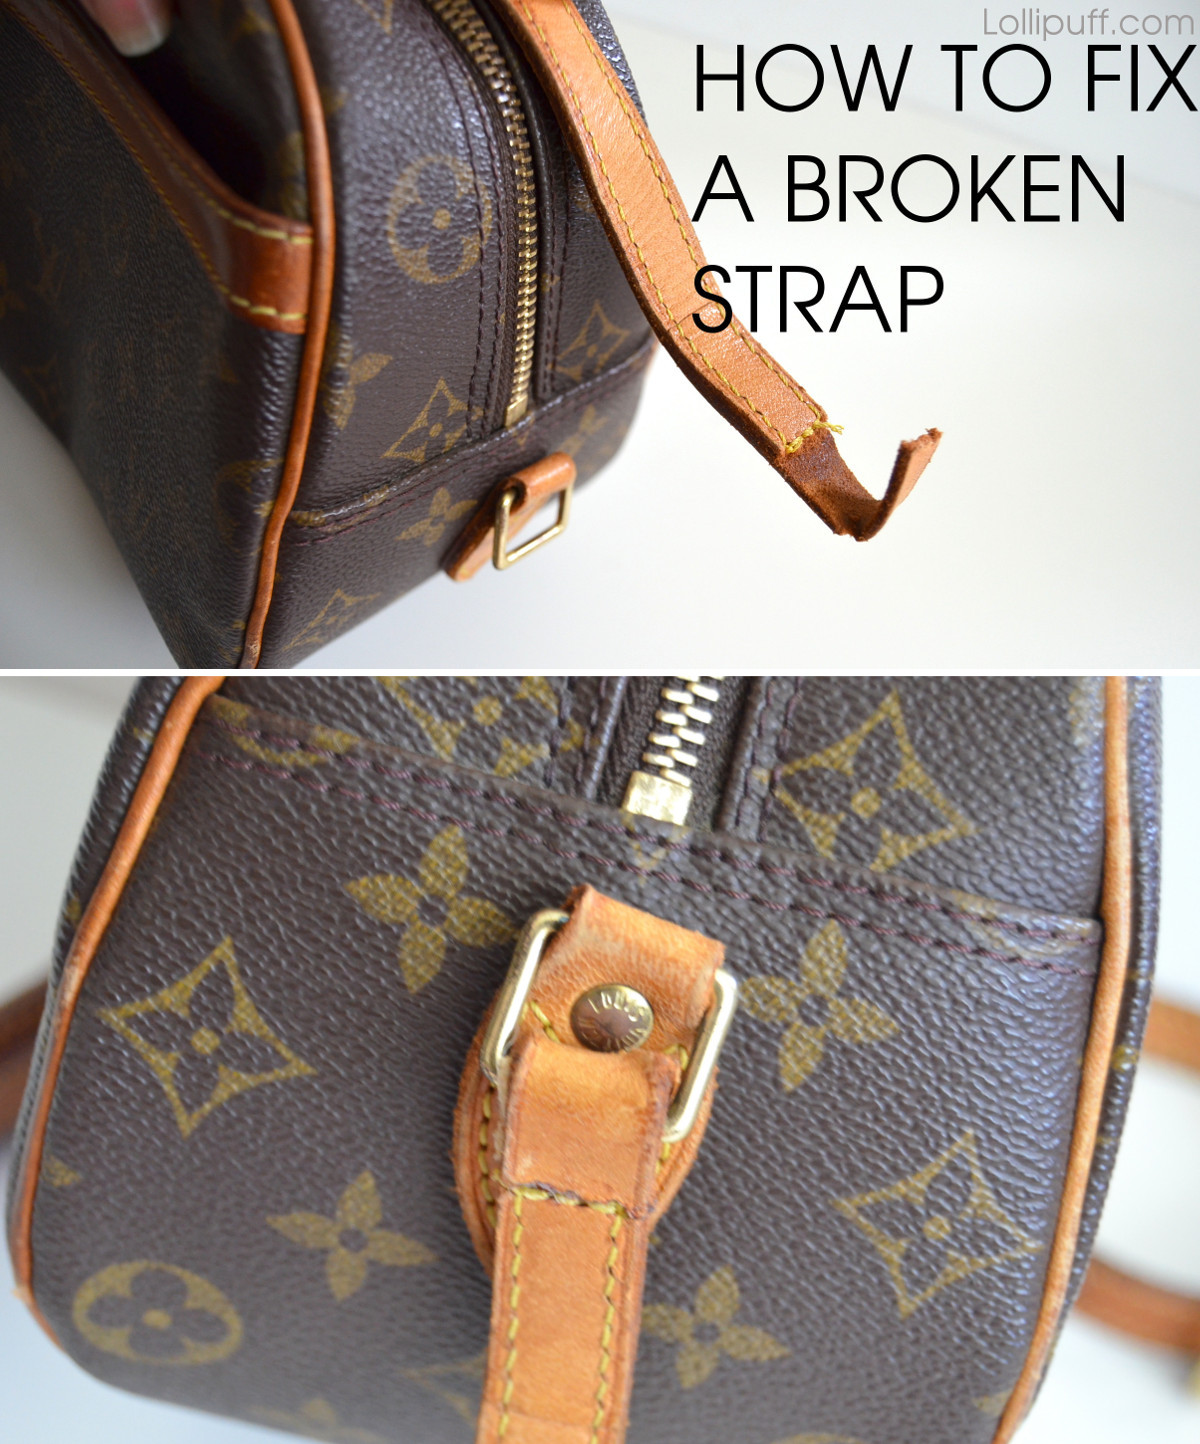 how can i fix a tear in my leather sofa modular bed nz to torn shoulder strap lollipuff